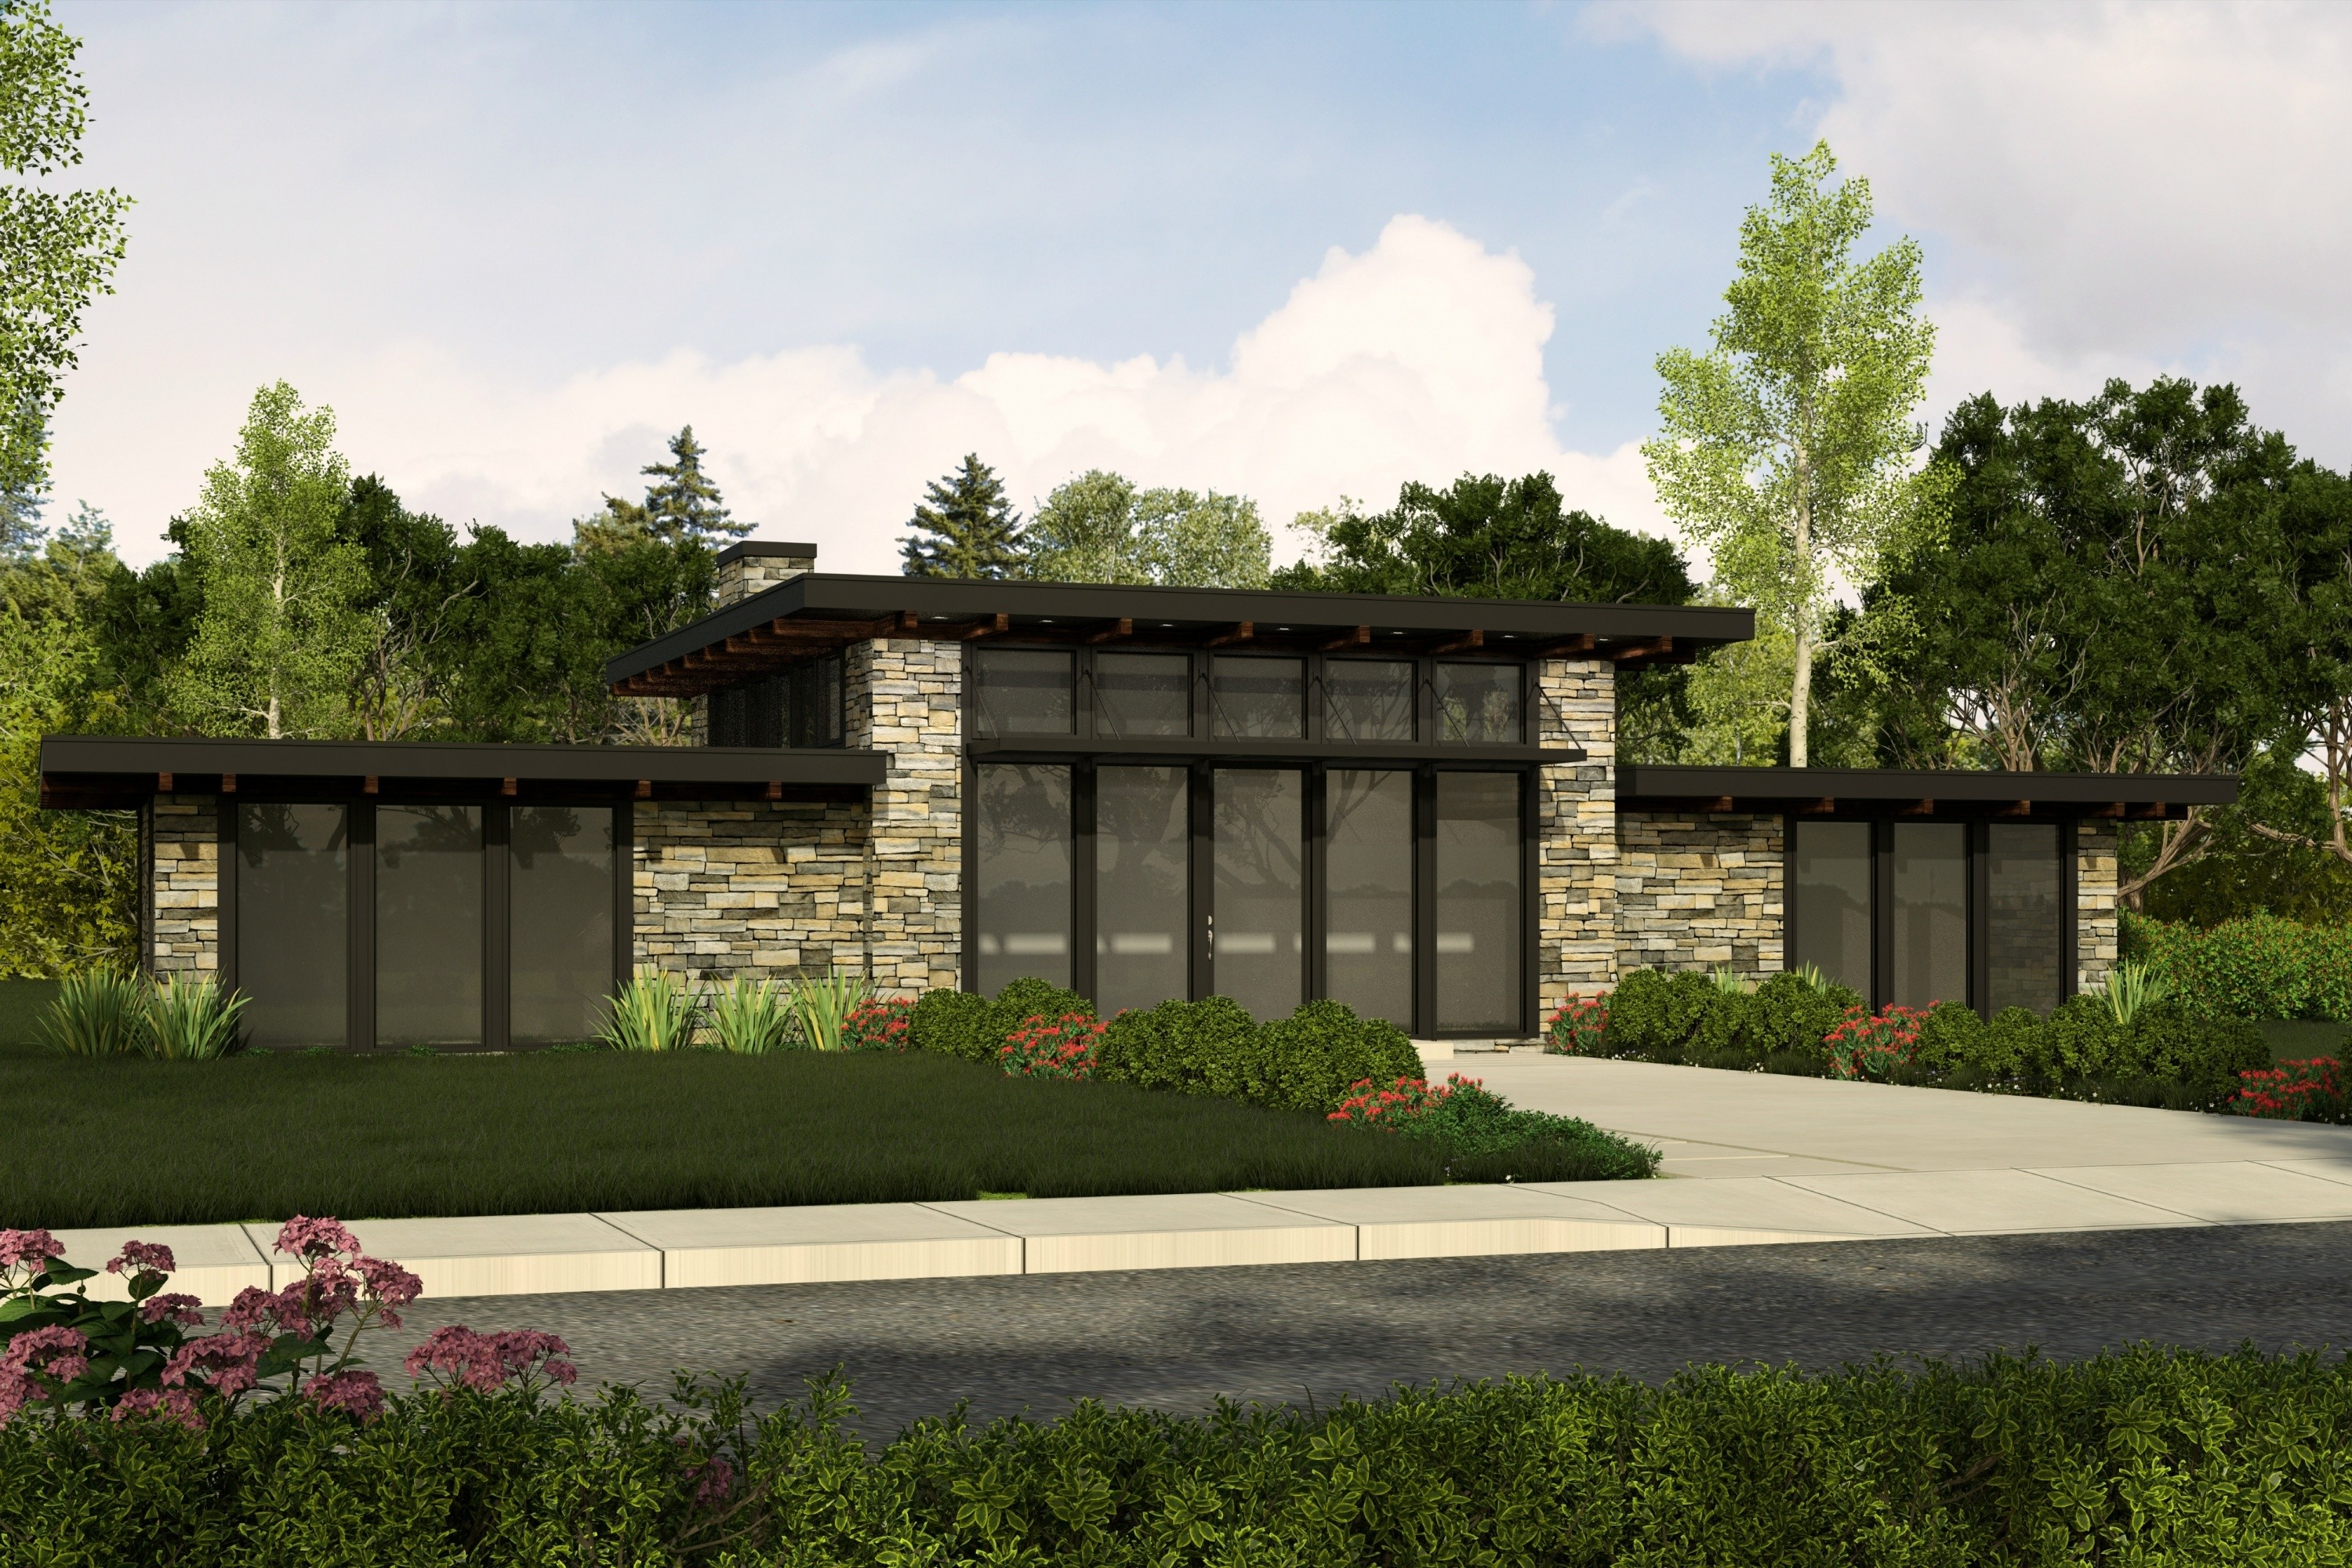 The Optional Garage/studio Plan MM 615 Shares The Same Modern Styling And  Offers A Great Deal Of Flexibility With The Upper Floor Studio.